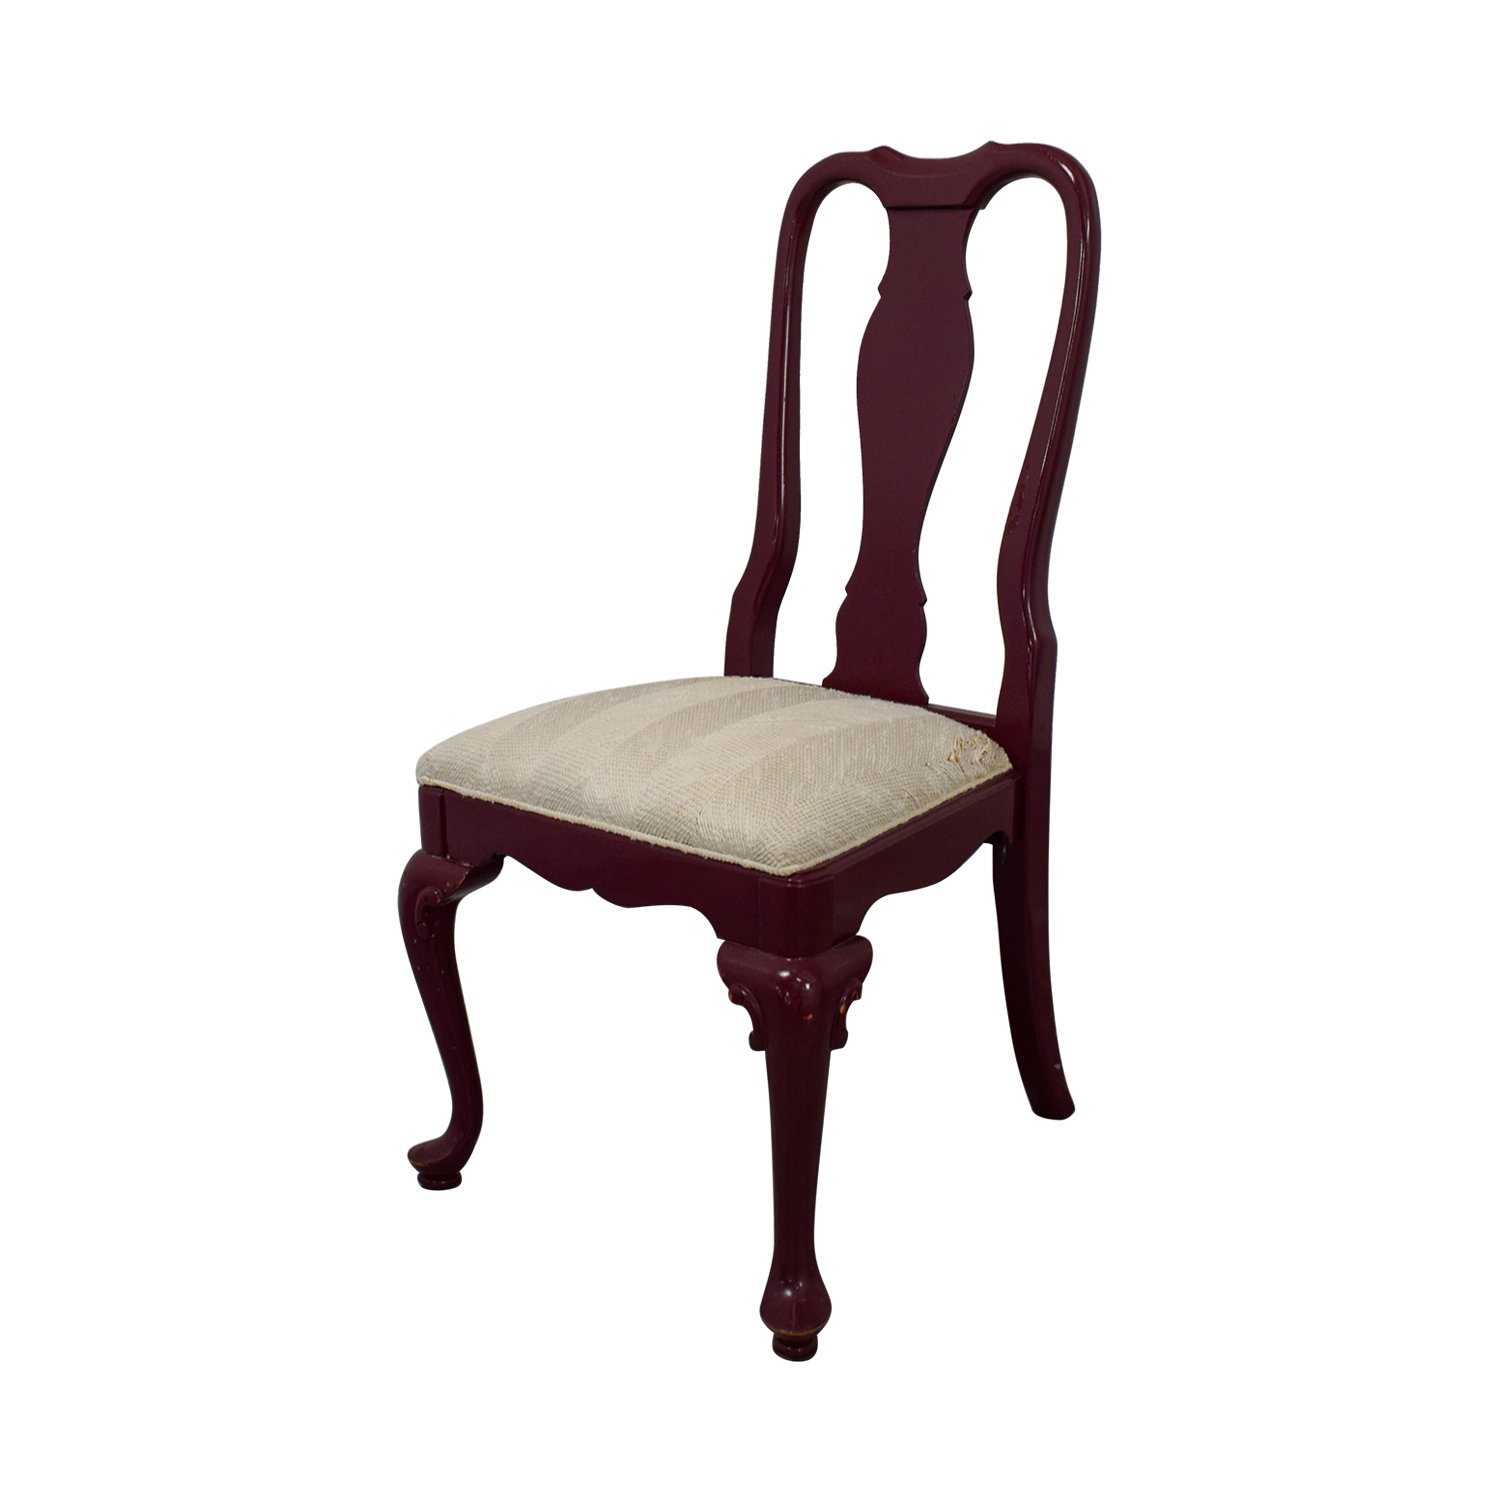 ... Century Chair Co Century Chair Co Carved Wood Chairs And Arm Chair  Discount ...